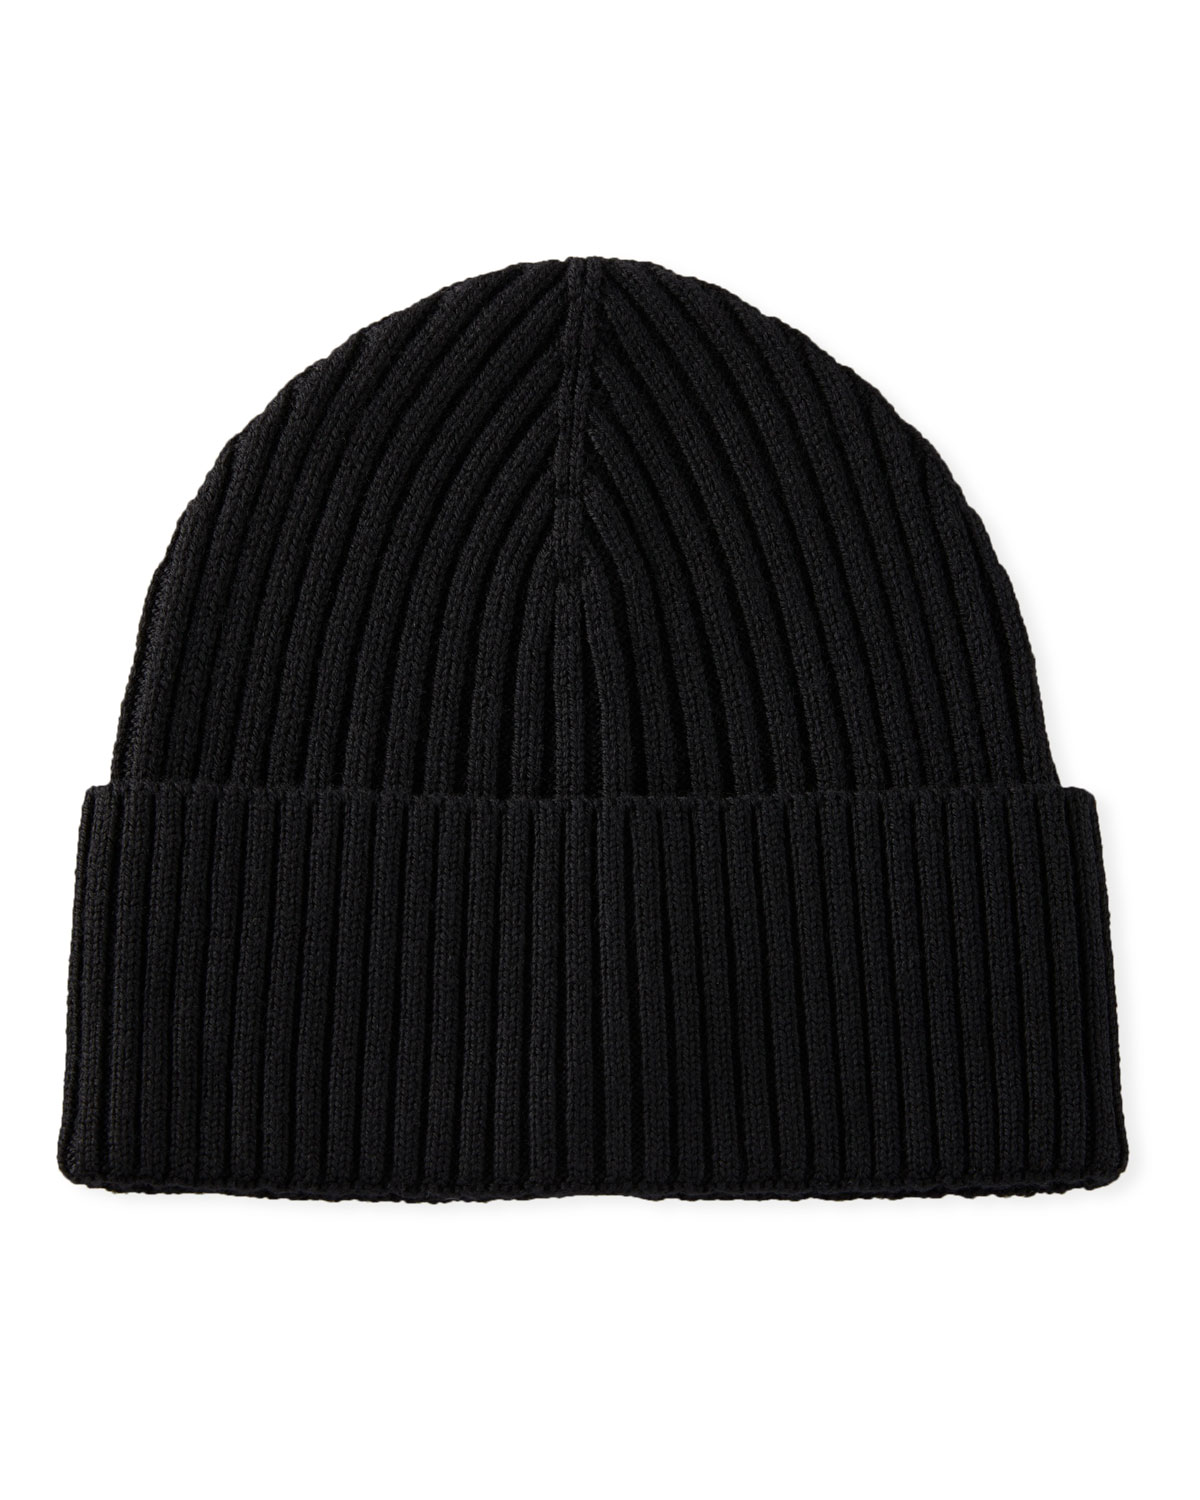 Eton Hats MEN'S RIBBED WOOL BEANIE HAT, BLACK